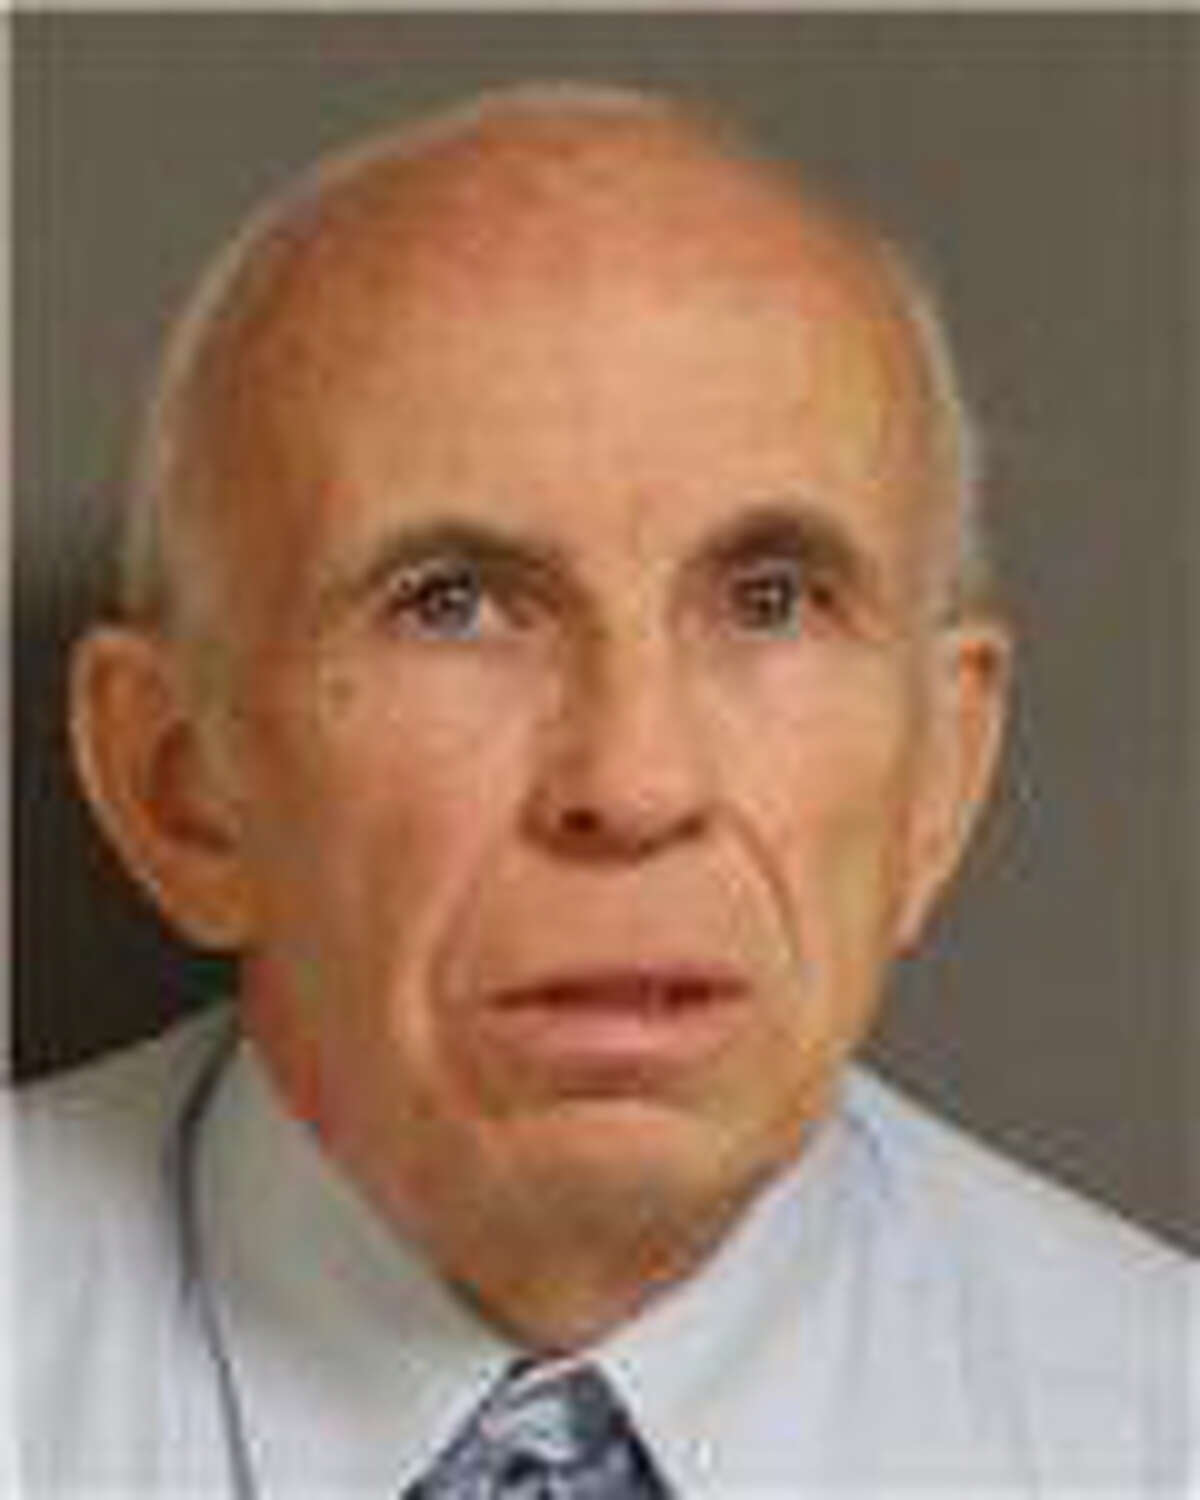 Paul S. Hines, a Professor at WestConn, was charged with having sex with a 15 year old boy he met on the internet.